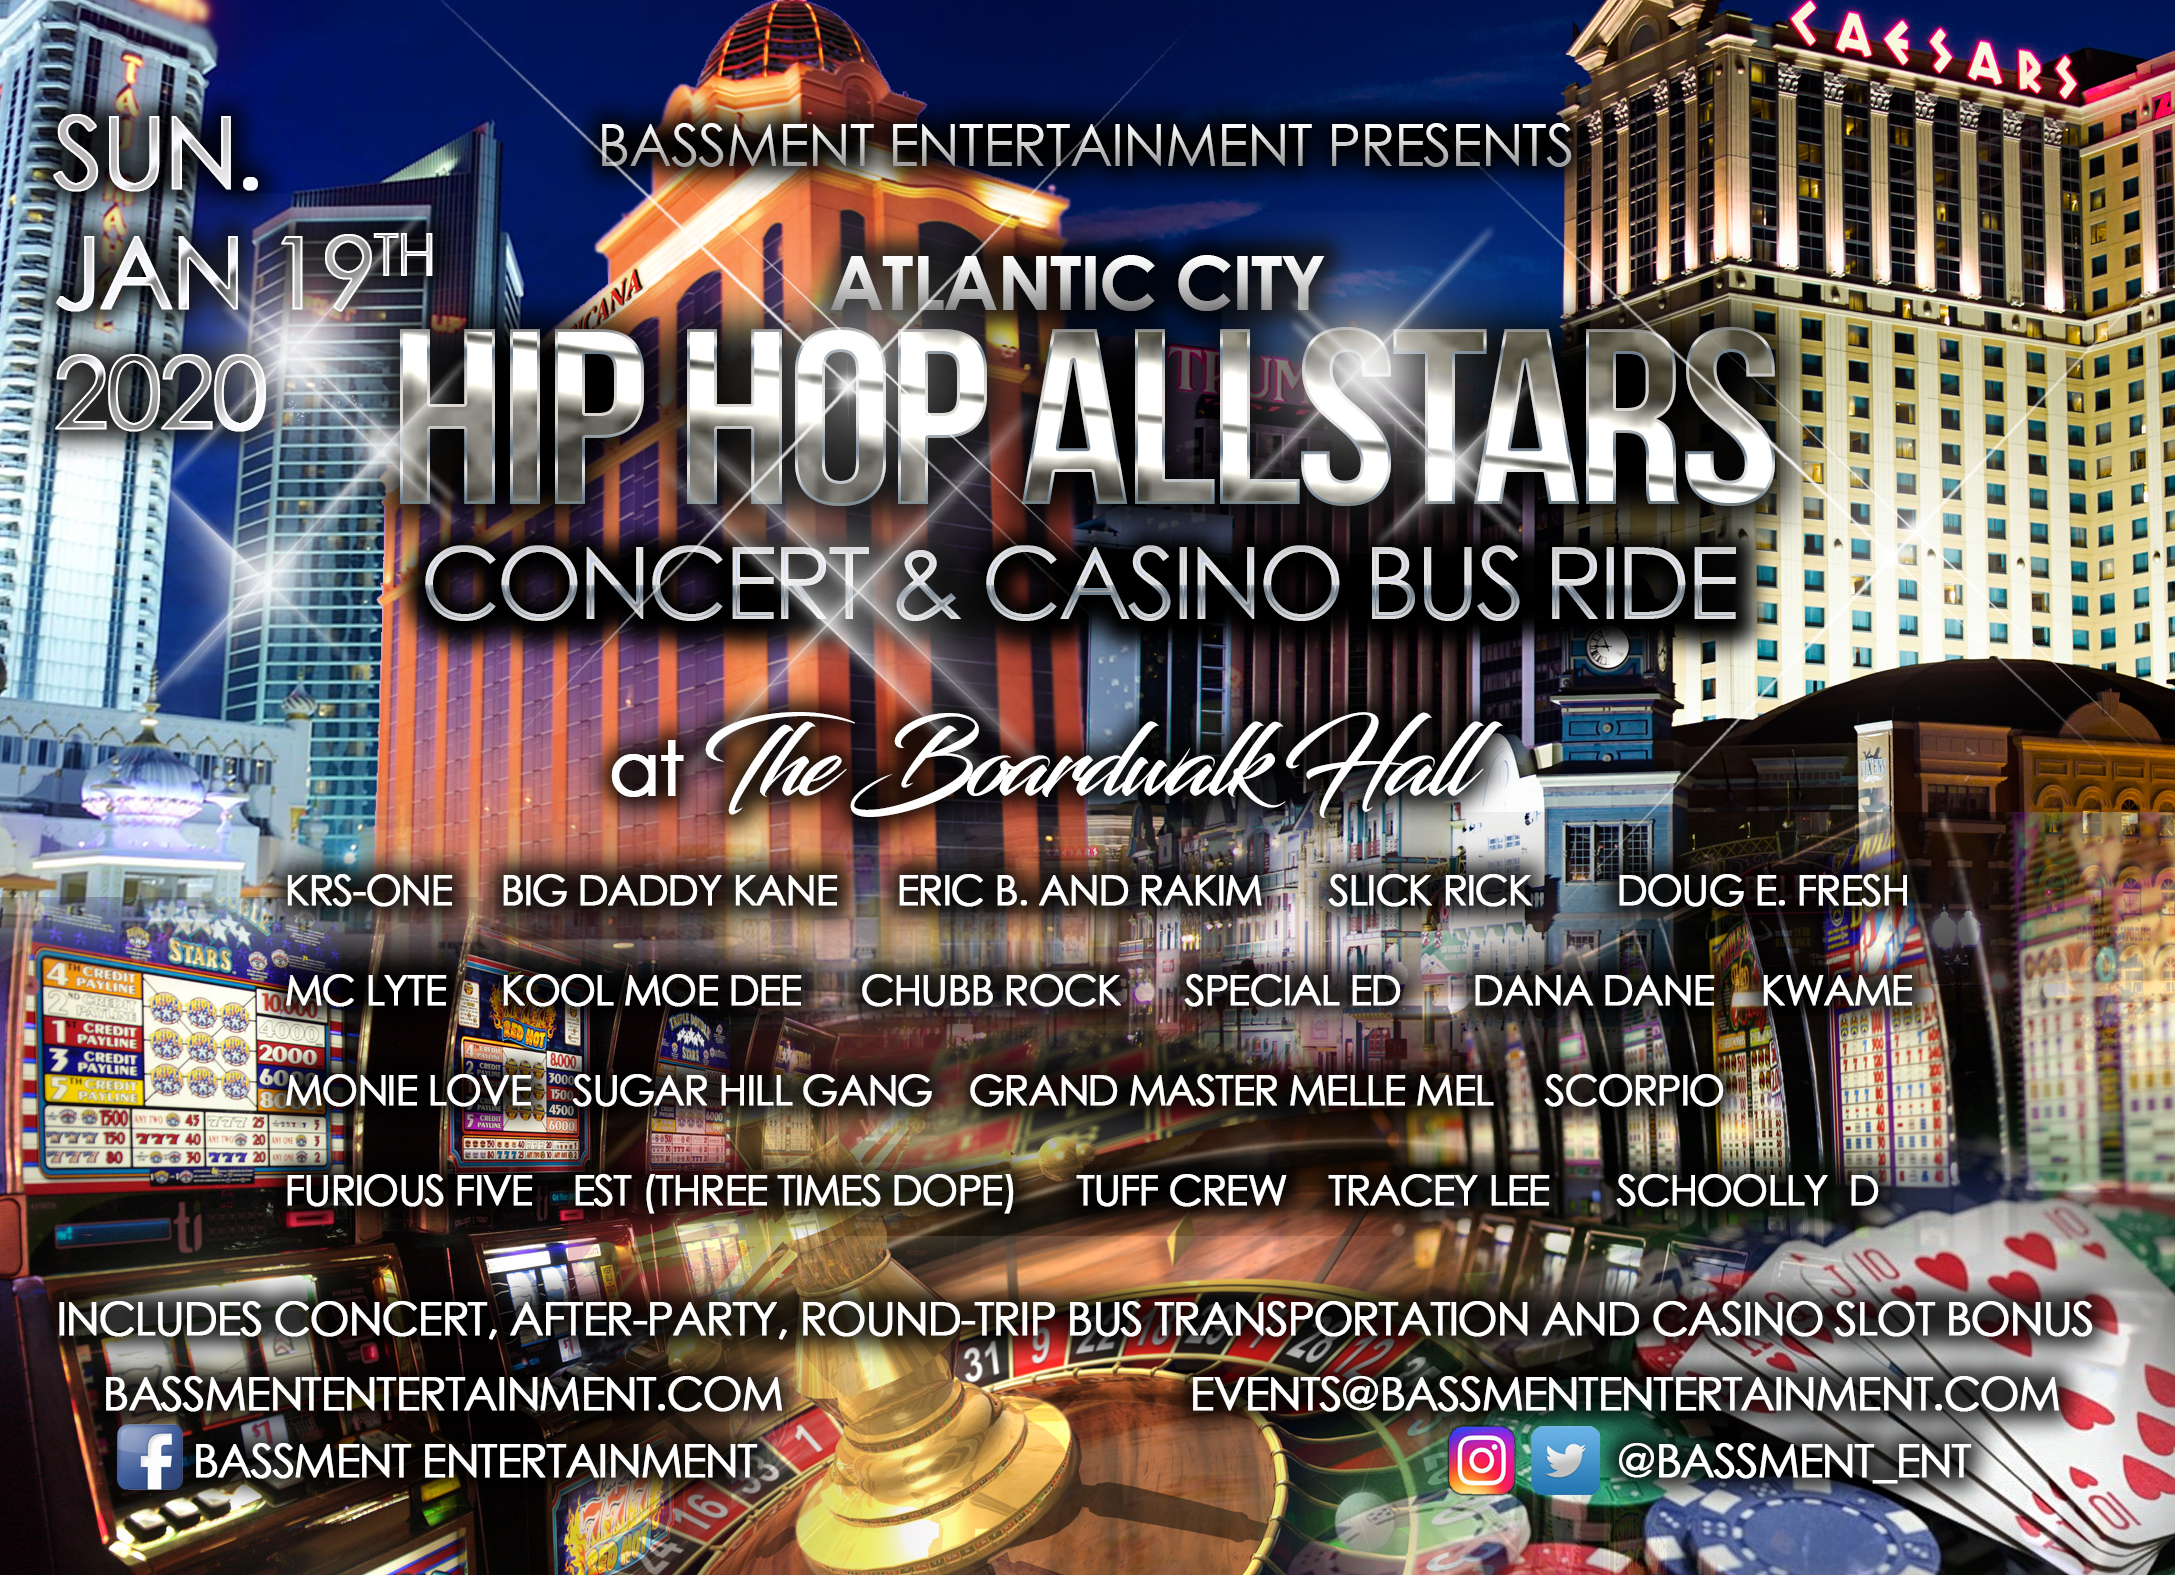 Atlantic City Hip-Hop All-Stars Concert and Casino Bus Ride